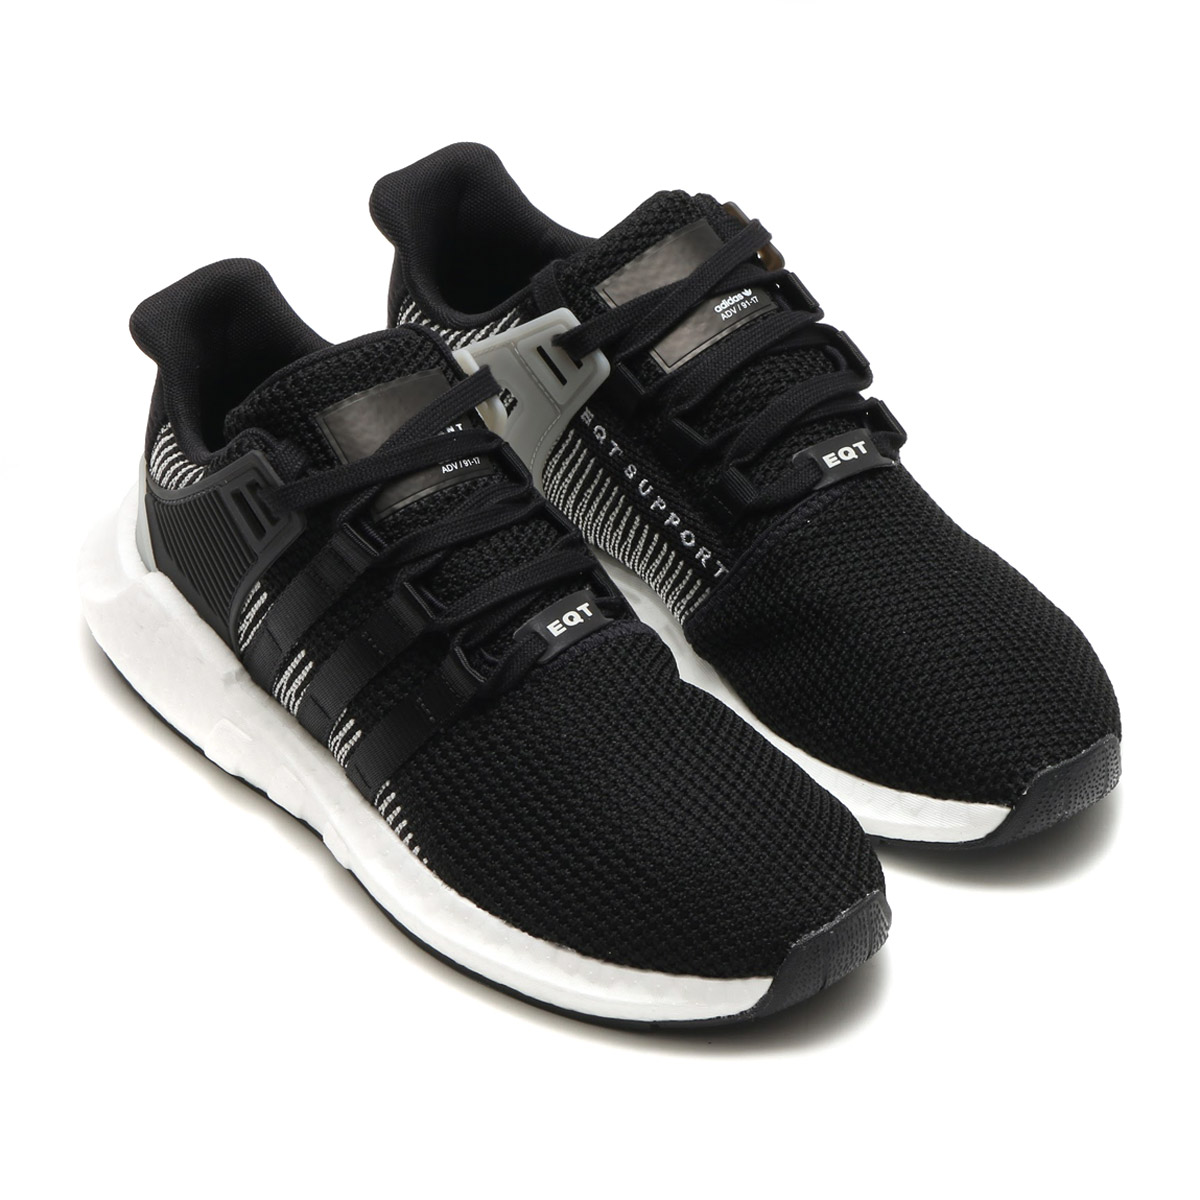 adidas Originals EQT SUPPORT 93/17(アディダス オリジナルス EQT サポート 93/17)CORE BLACK/CORE BLACK/RUNNING WHITE【メンズ スニーカー】17FW-I